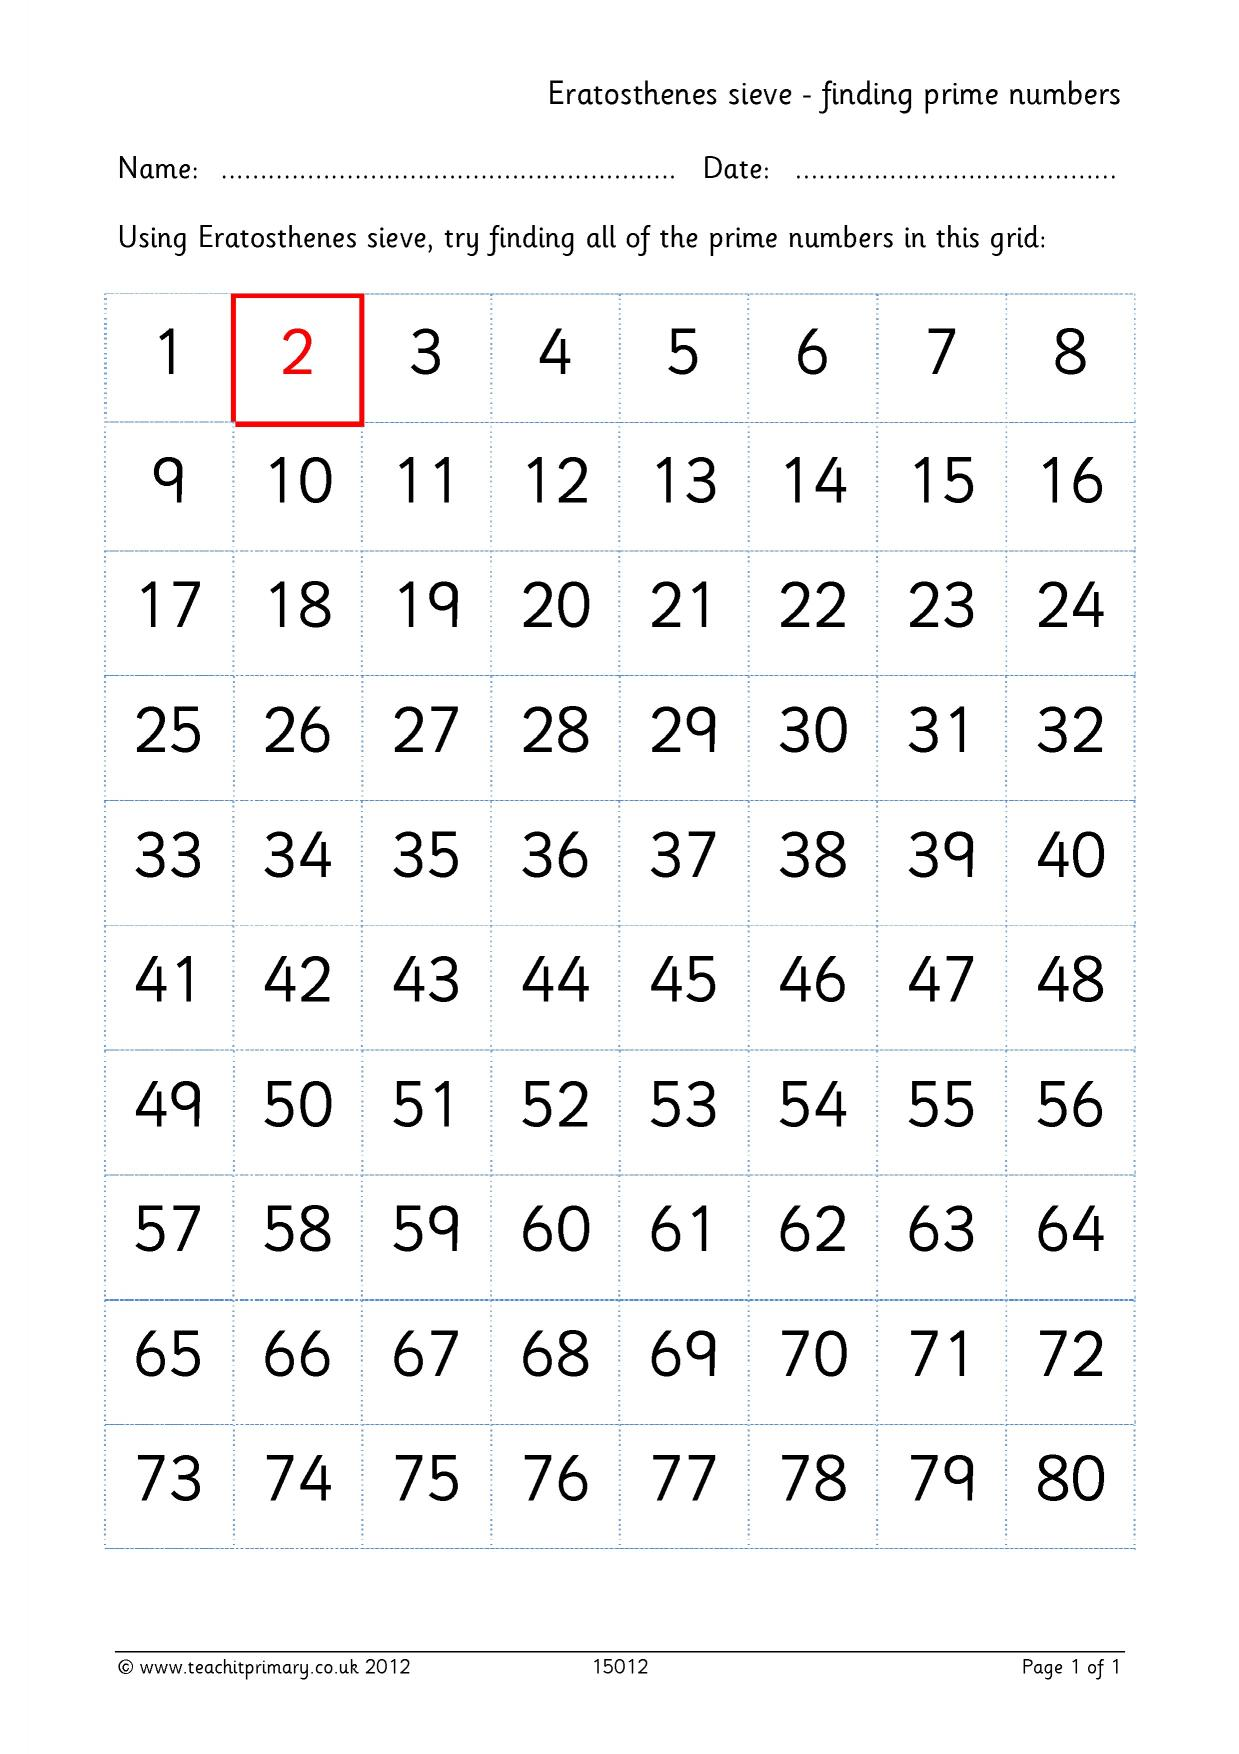 worksheet Sieve Of Eratosthenes Worksheet eratosthenes sieve finding prime numbers number and place value resource thumbnail